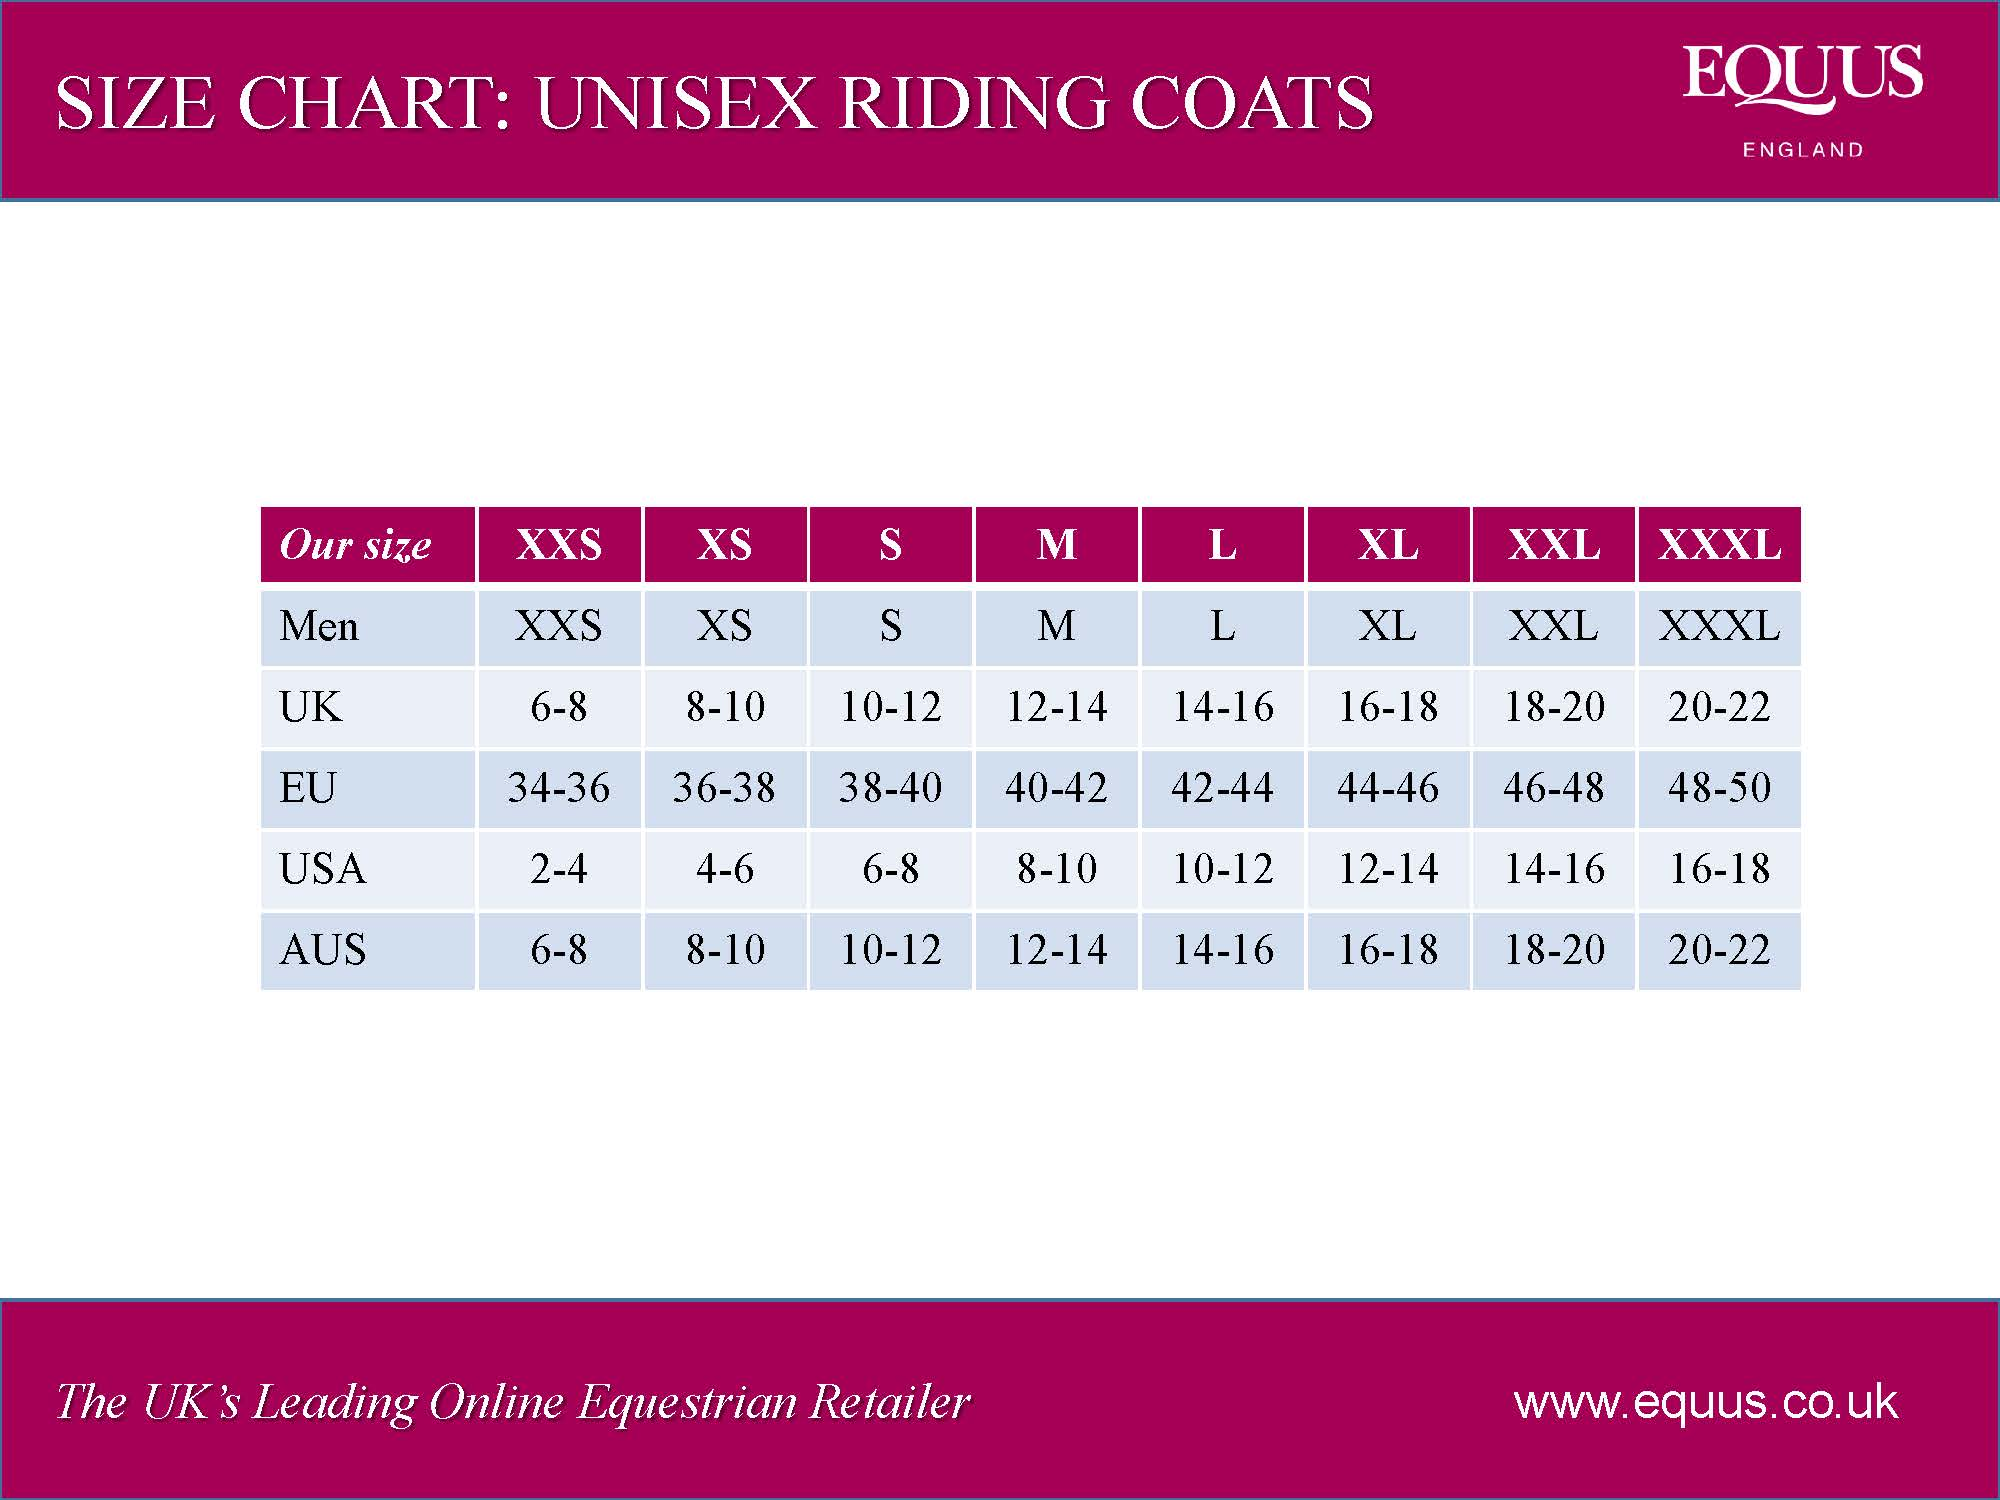 Unisex Riding Coats Size Chart